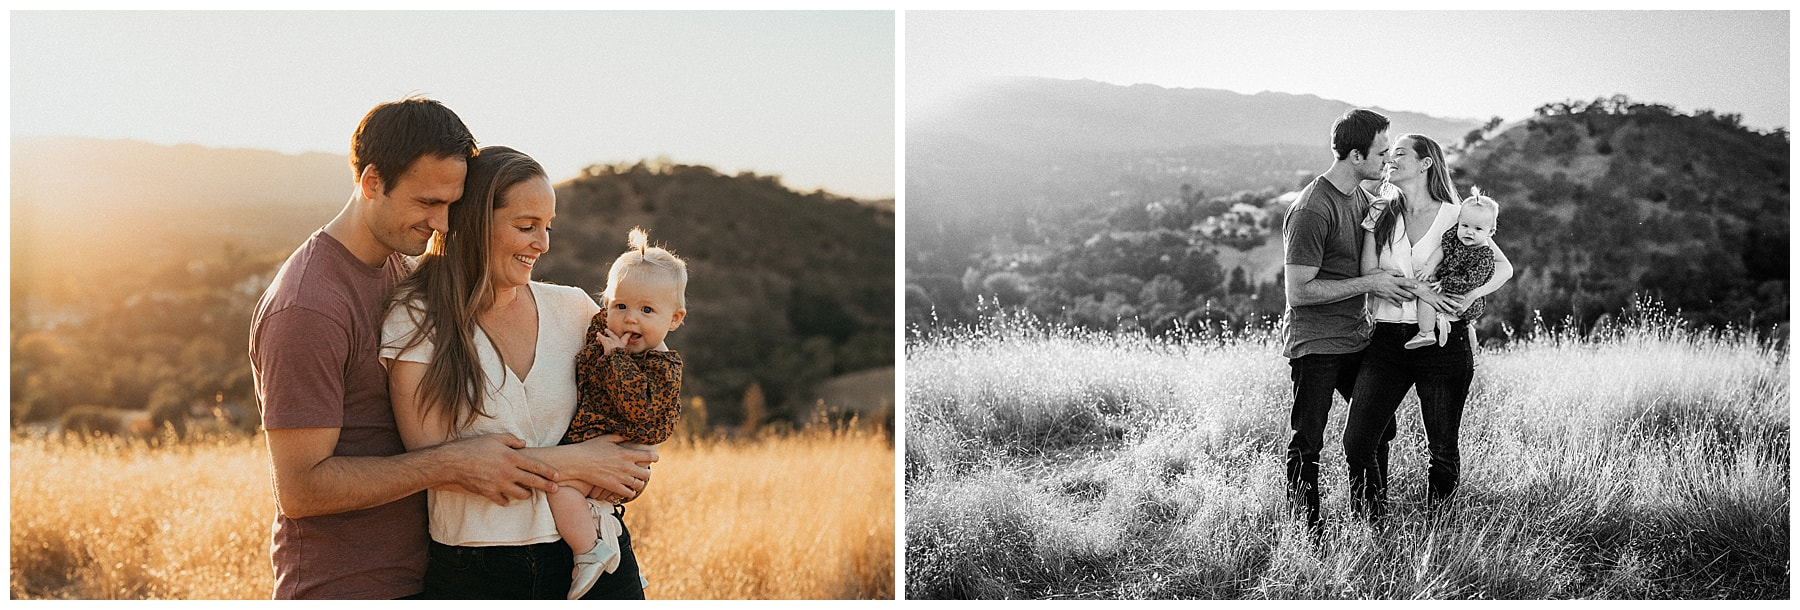 Jessica mccoy photography, bay area photographer, walnut creek photographer, martinez photographer, sonoma photographer, east bay family photographer, east bay photographer, bay area family photographer, san francisco family photographer, Santa Cruz Family Photographer, lake tahoe photographer